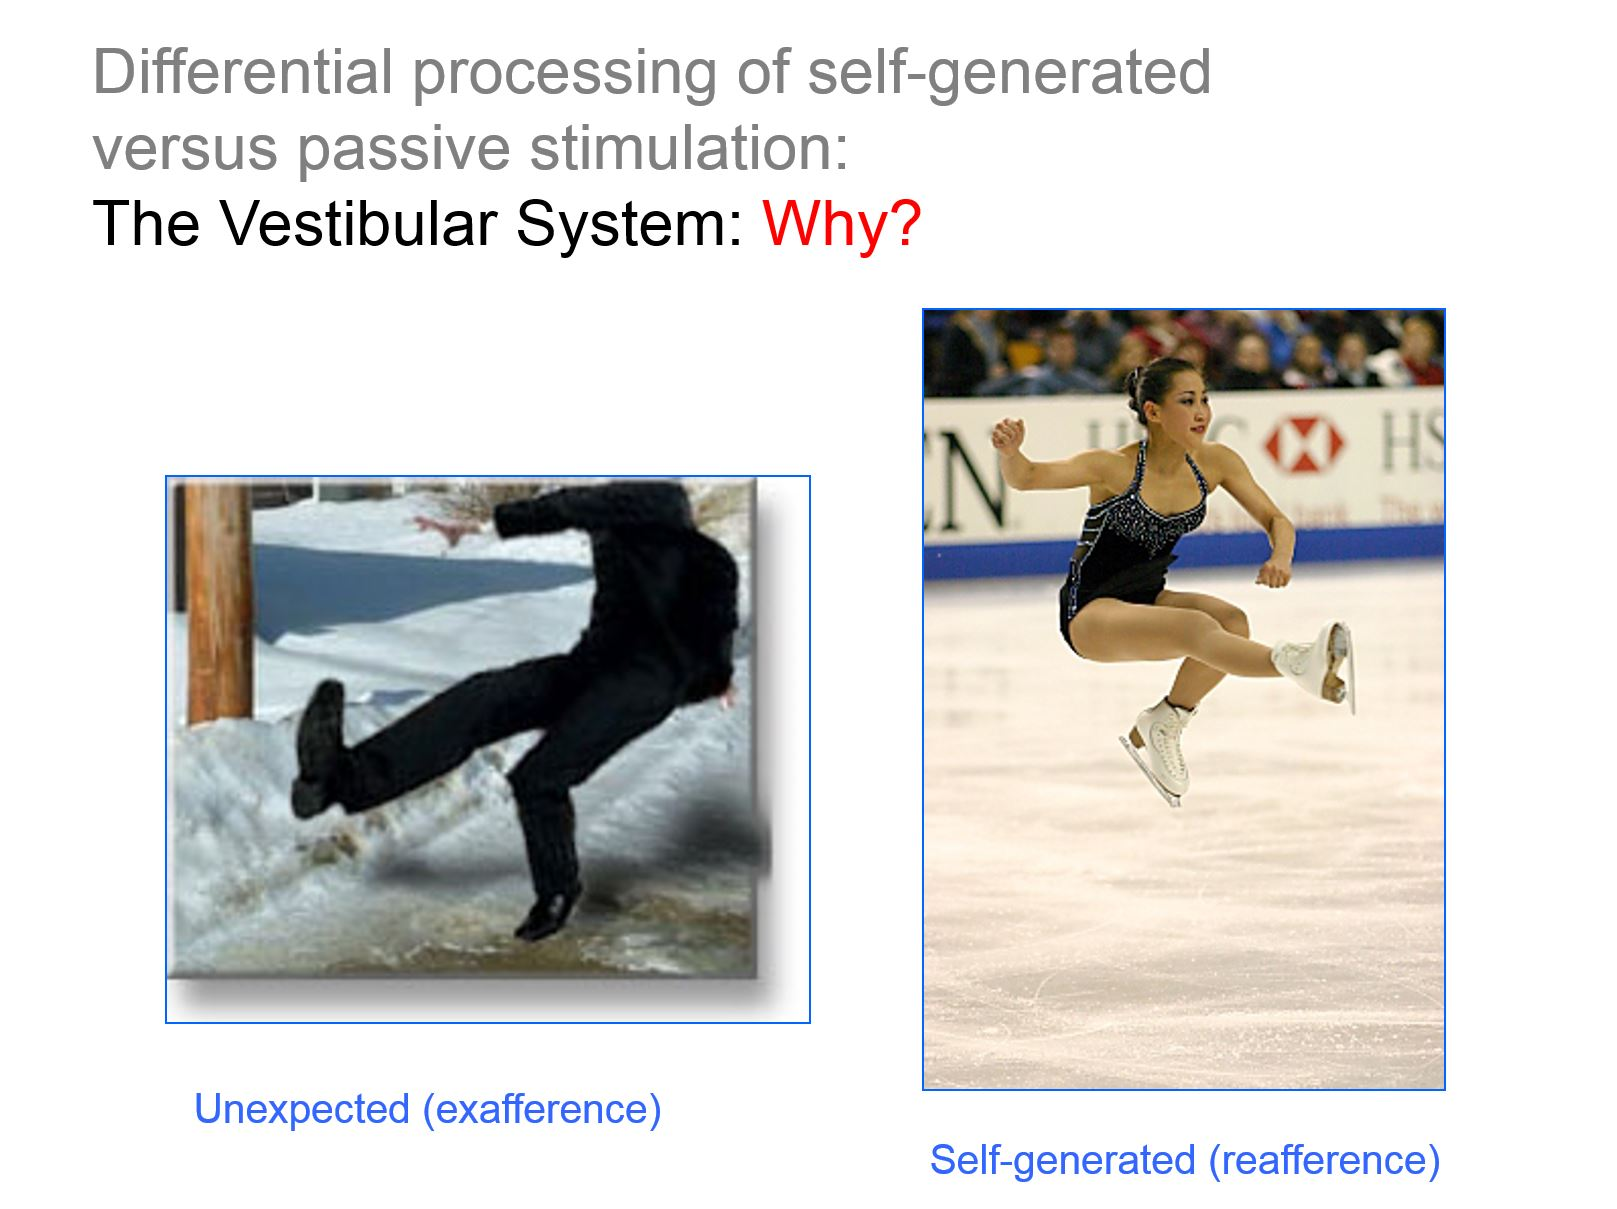 Self-generated versus passive stimulation